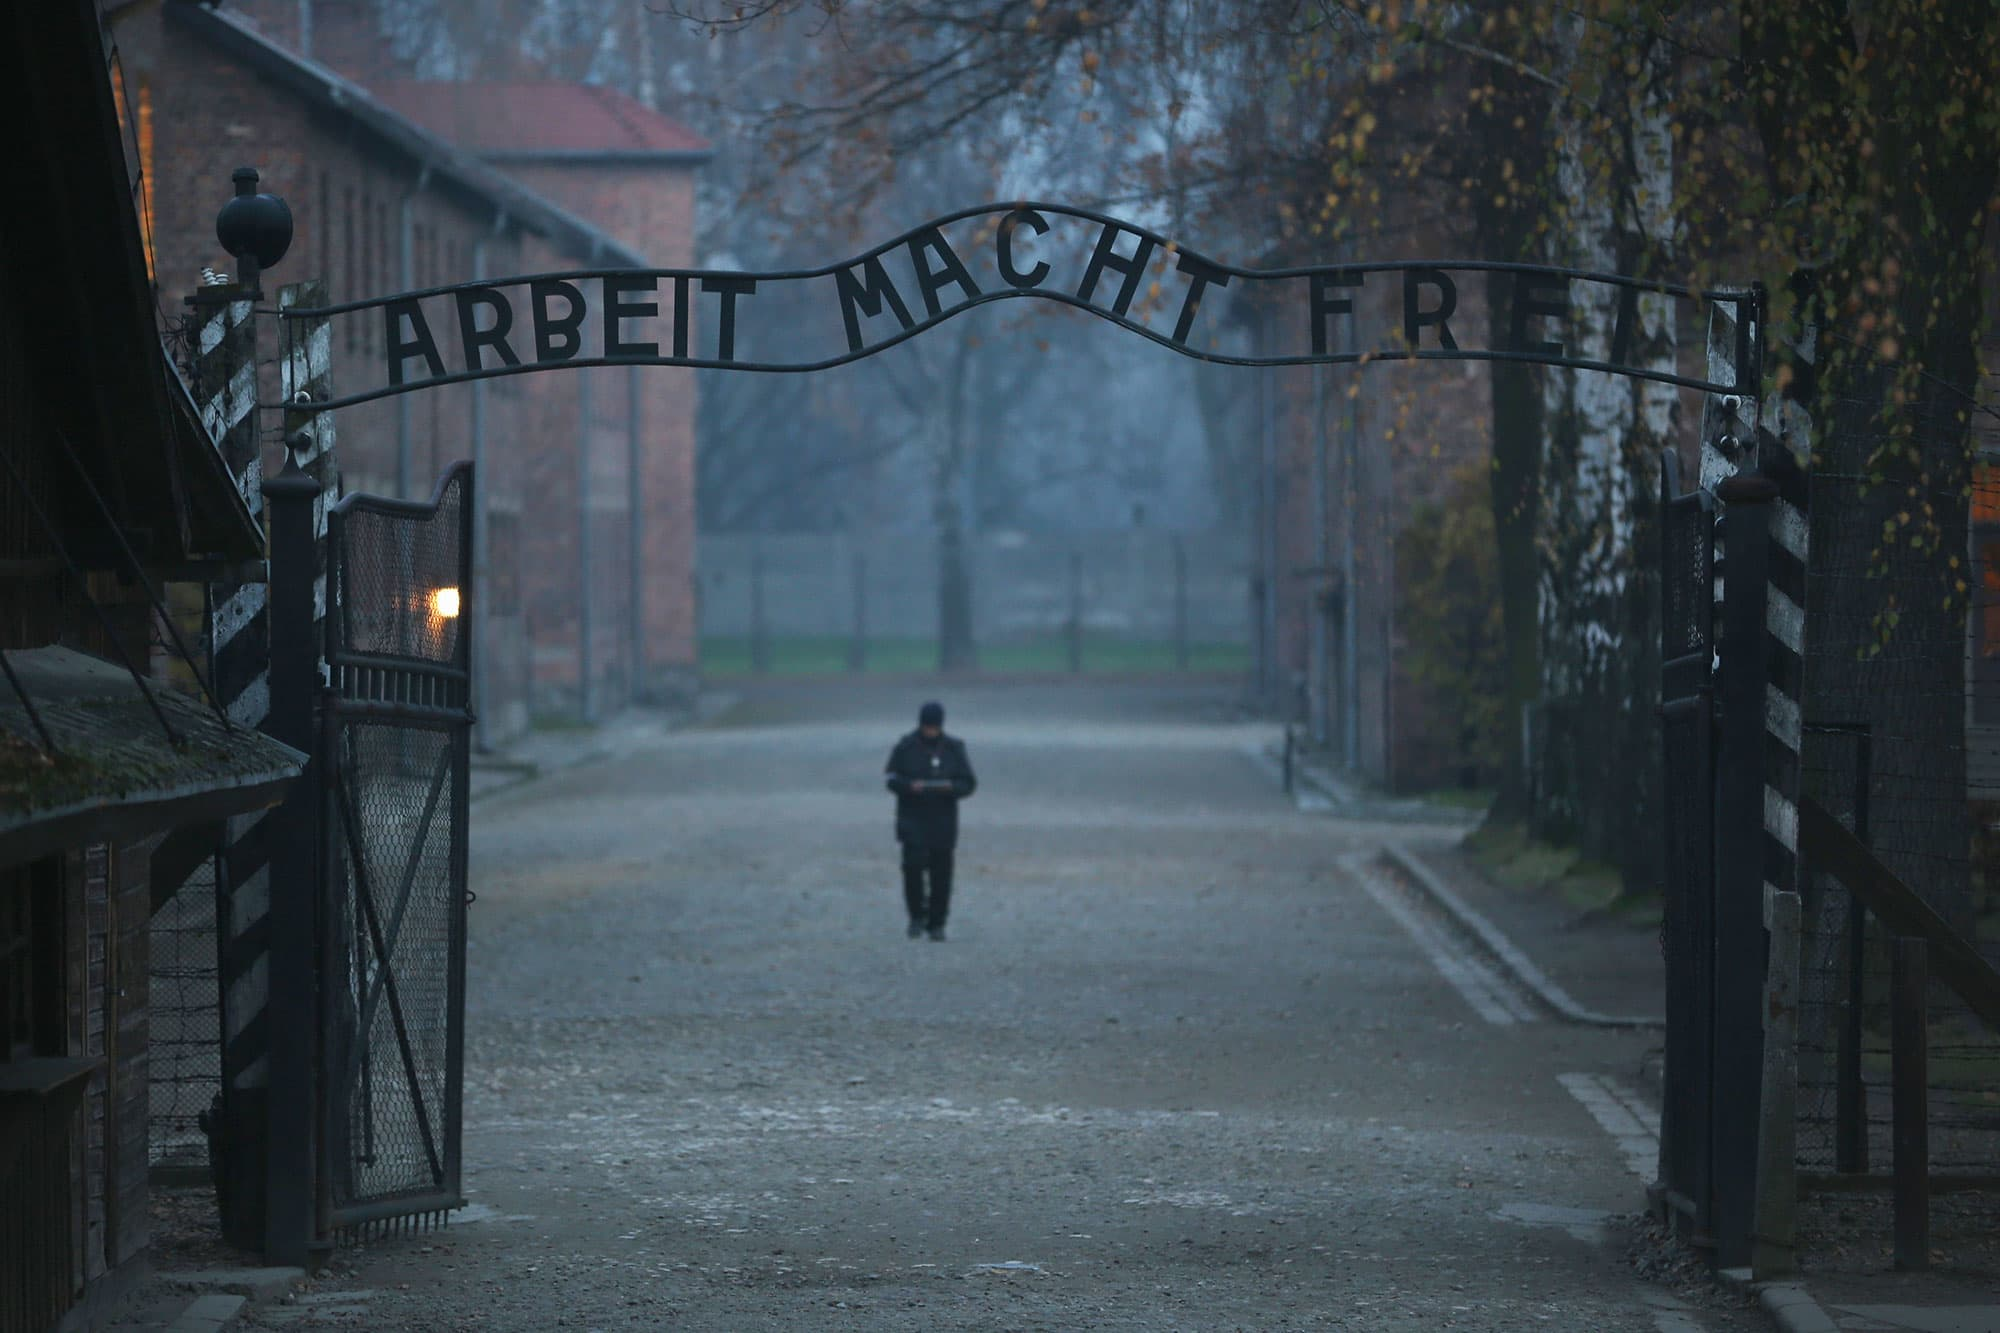 Amazon removes Auschwitz-themed holiday decorations, bottle openers and fridge magnets